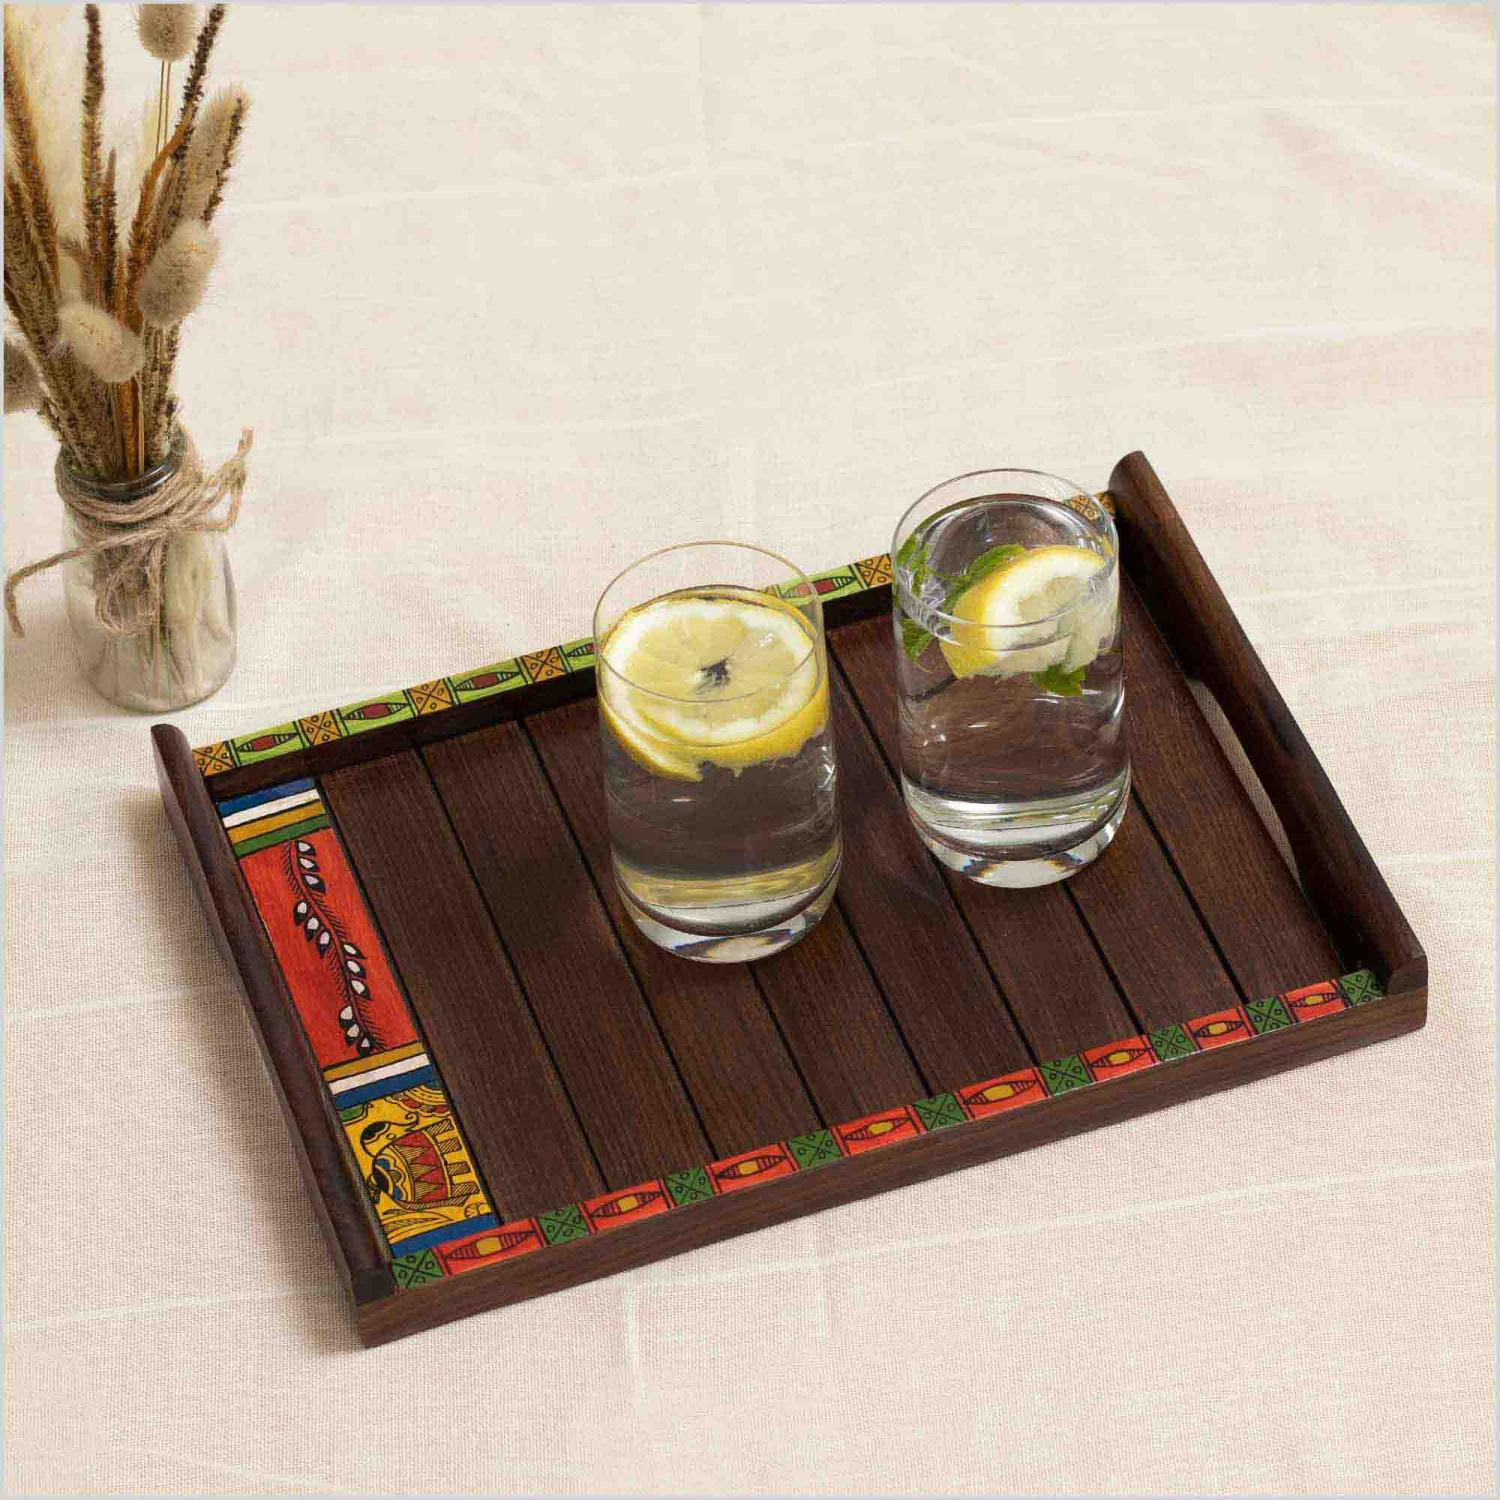 Wooden tray with colorful painted edge with tribal motifs and handles carrying two glasses of water with lemon and mint placed on a white surface next to a vase of dried flowers.